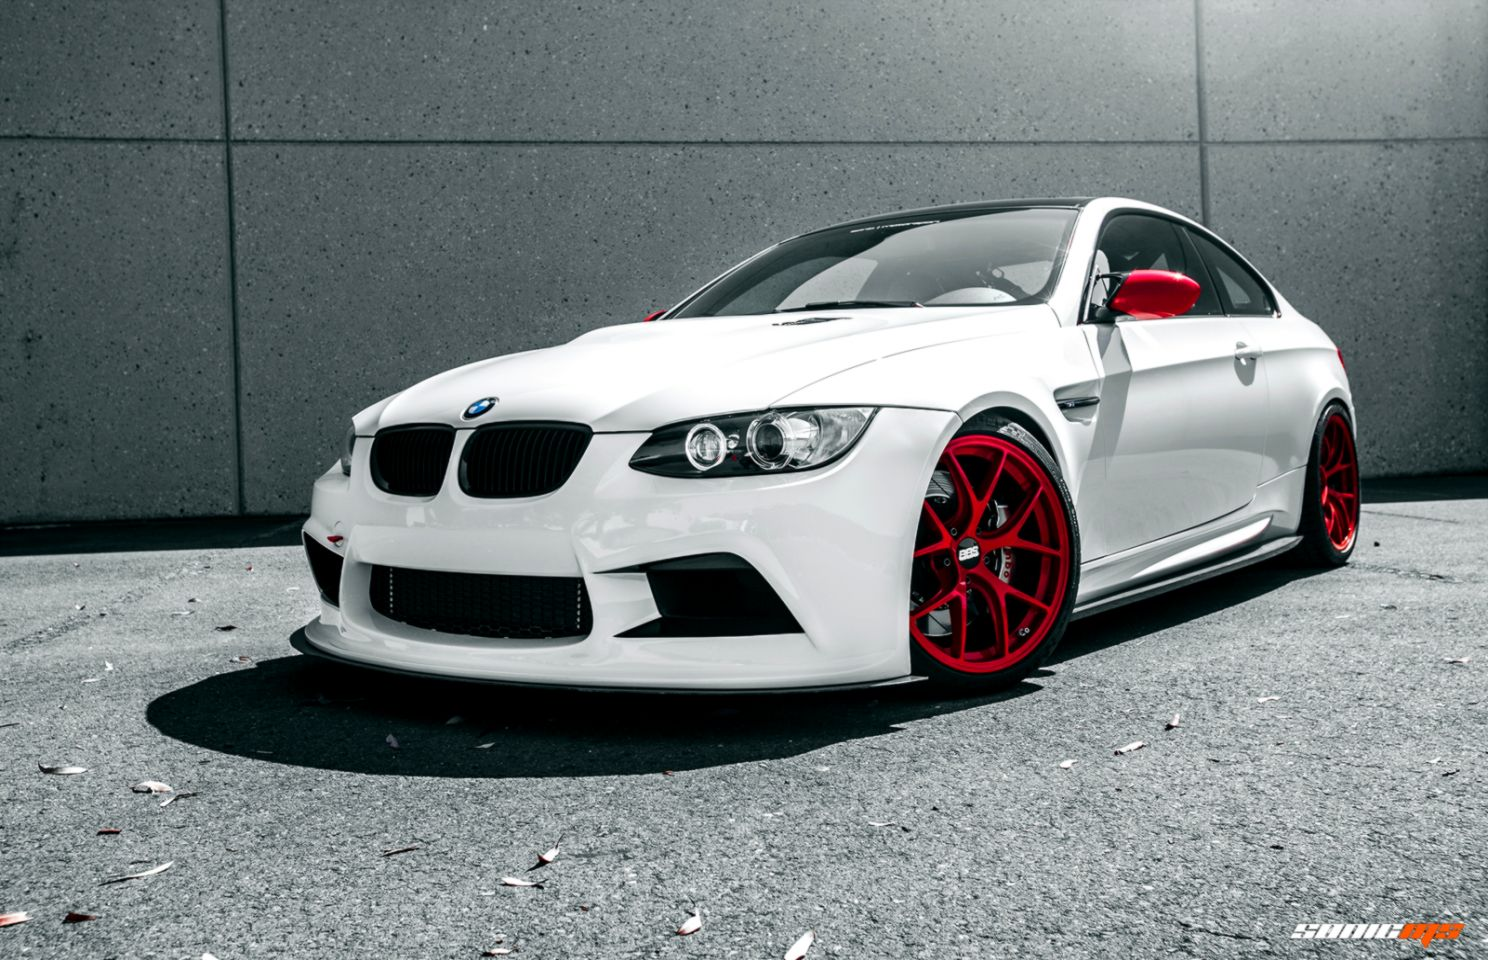 Bmw M3 E92 White Car Back Tuning Hd Wallpaper Wallpapers Ultra Sporty Gold Mags 2017 - Medium